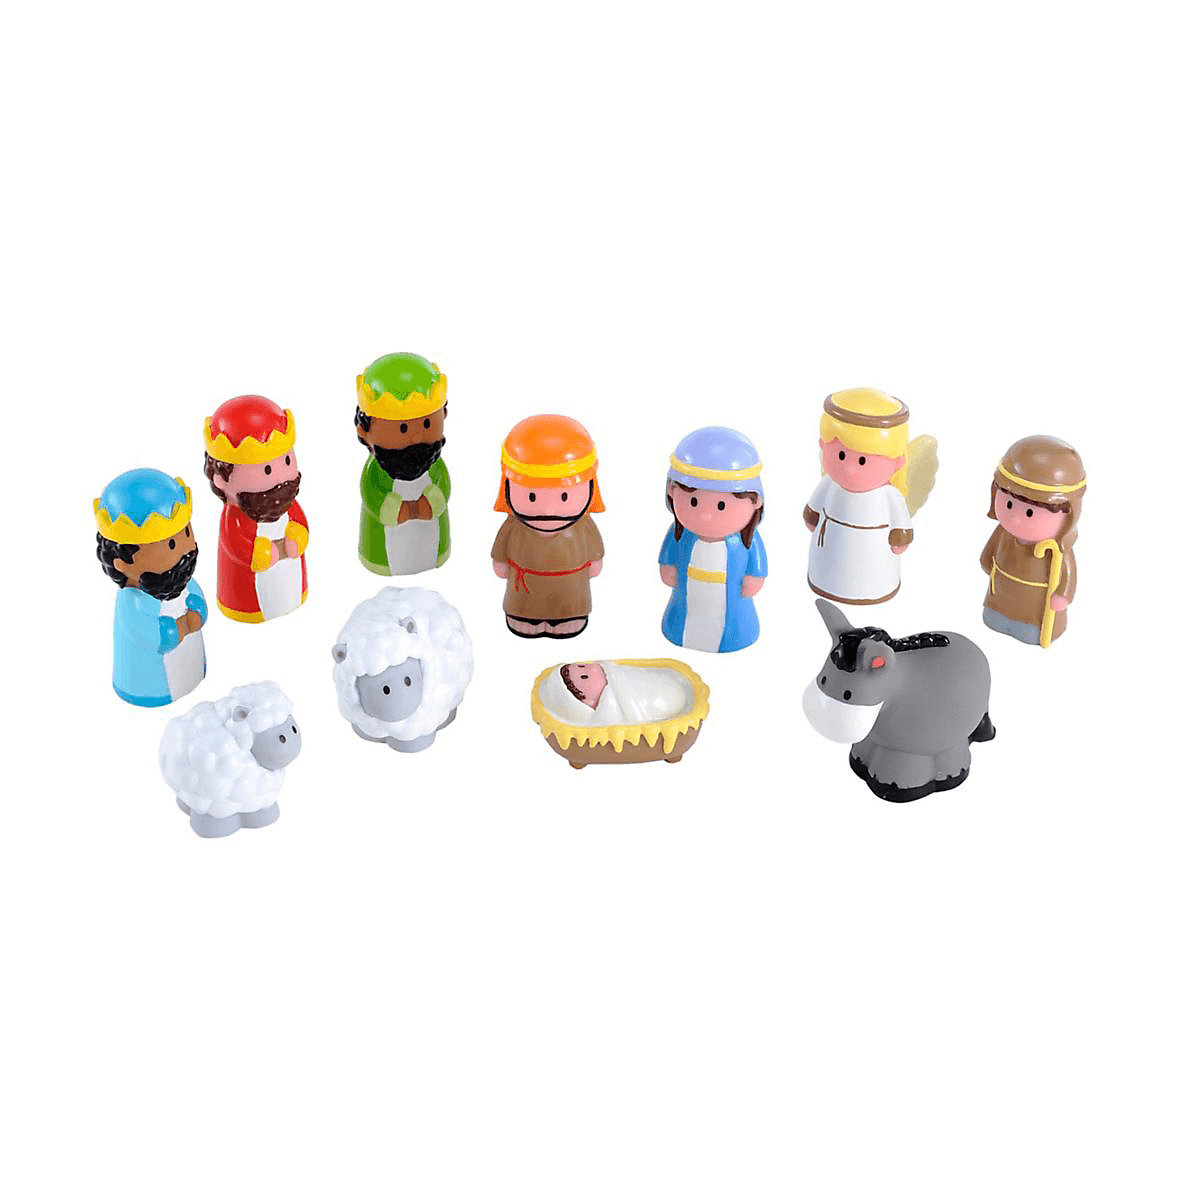 Toys For Girls 18 Months : New elc boys and girls happyland nativity set toy from